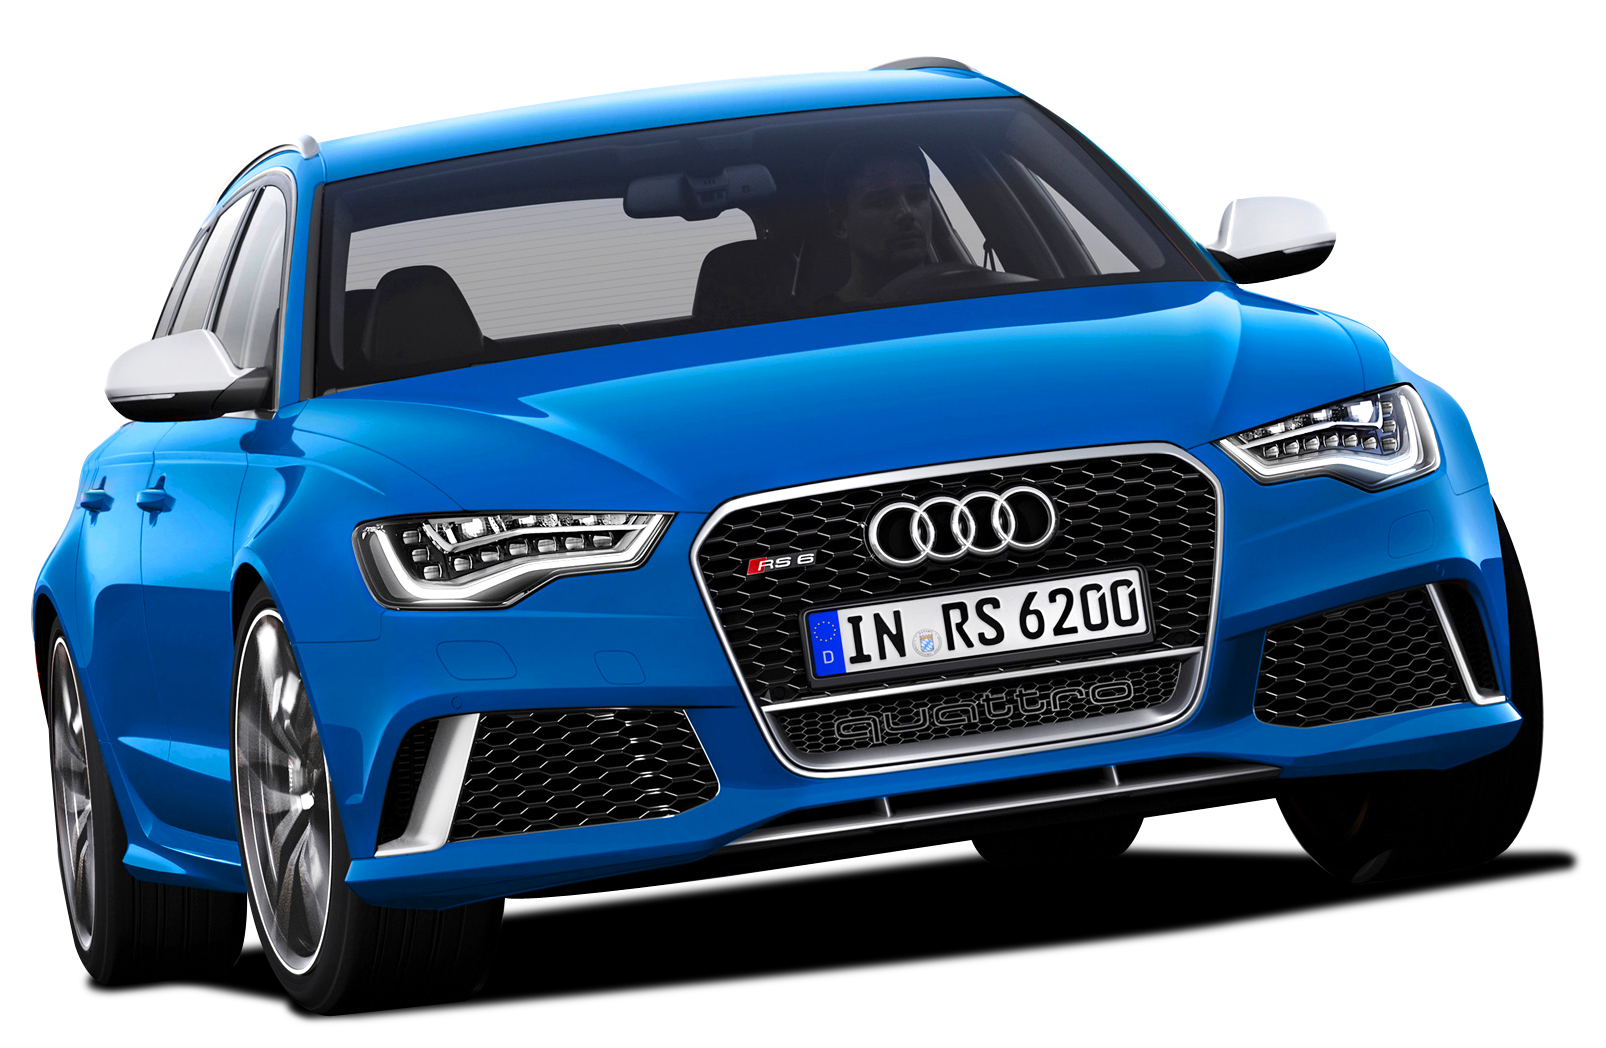 Download Audi PNG Clipart For Designing Projects 1.